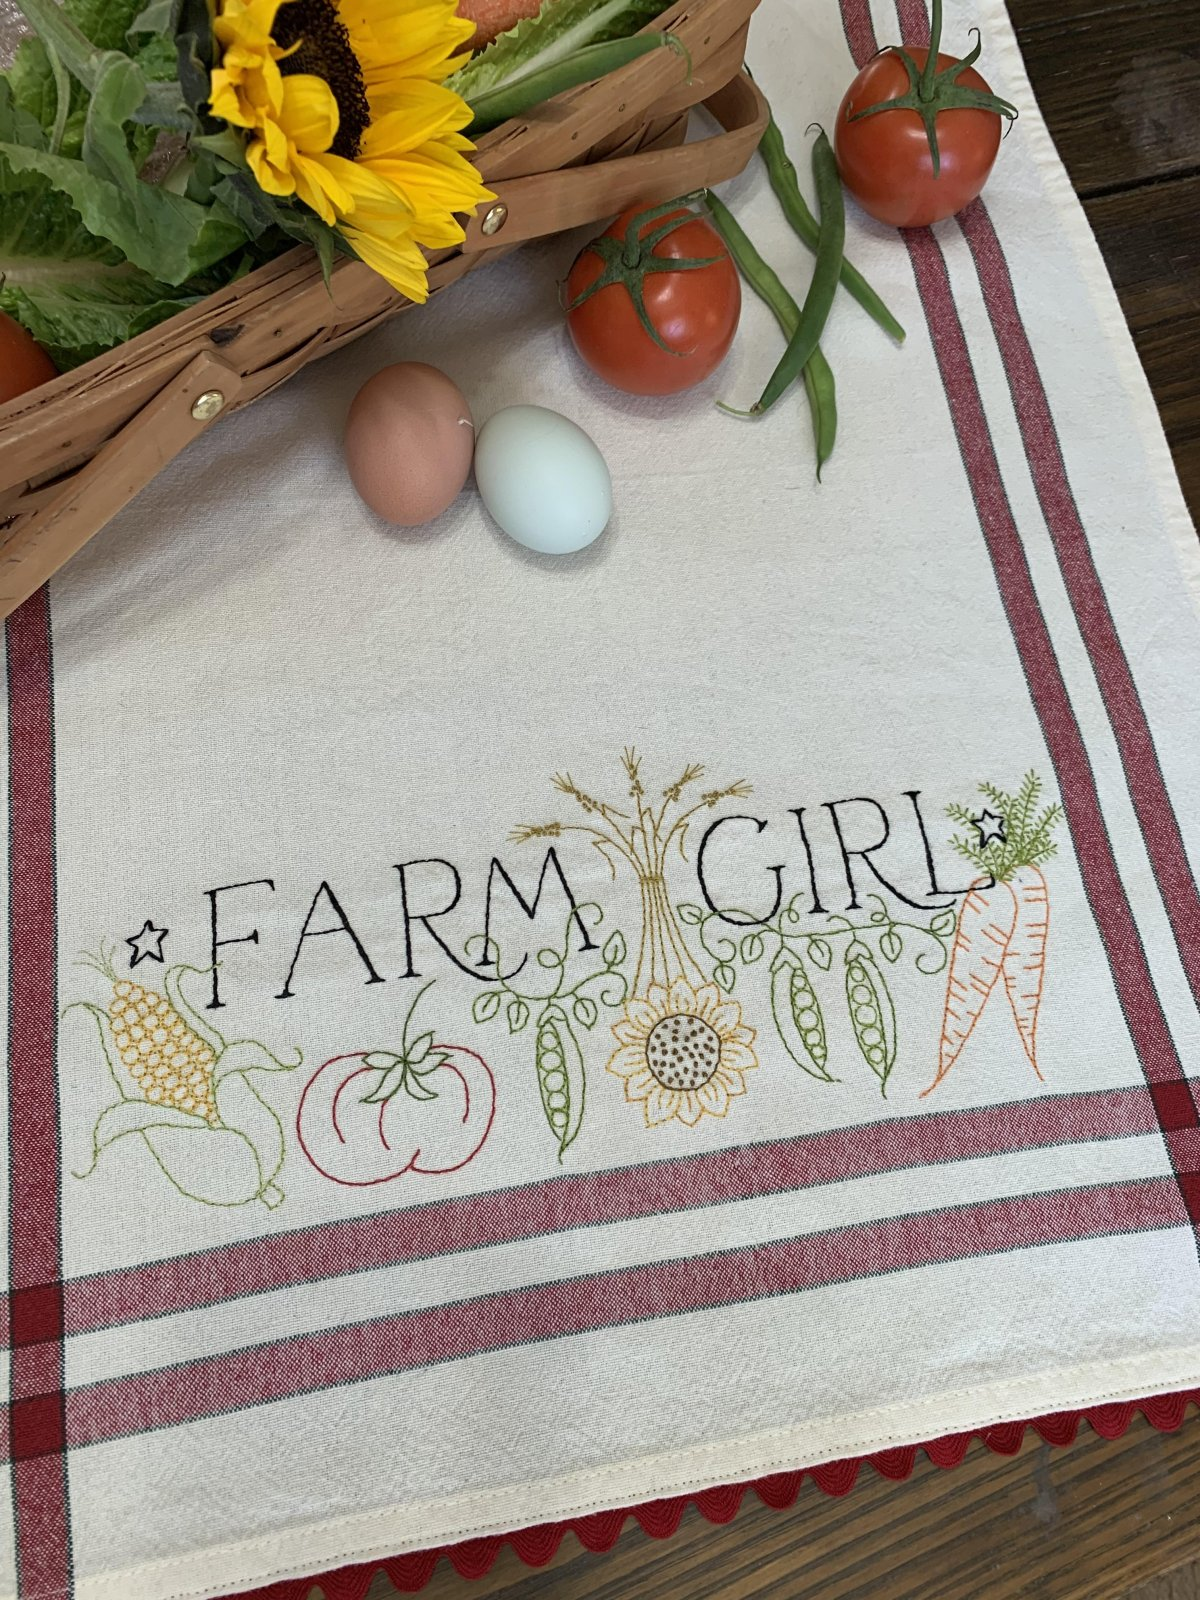 Farm Girl  Dishtowel Kit - EXTRA BONUS KIT